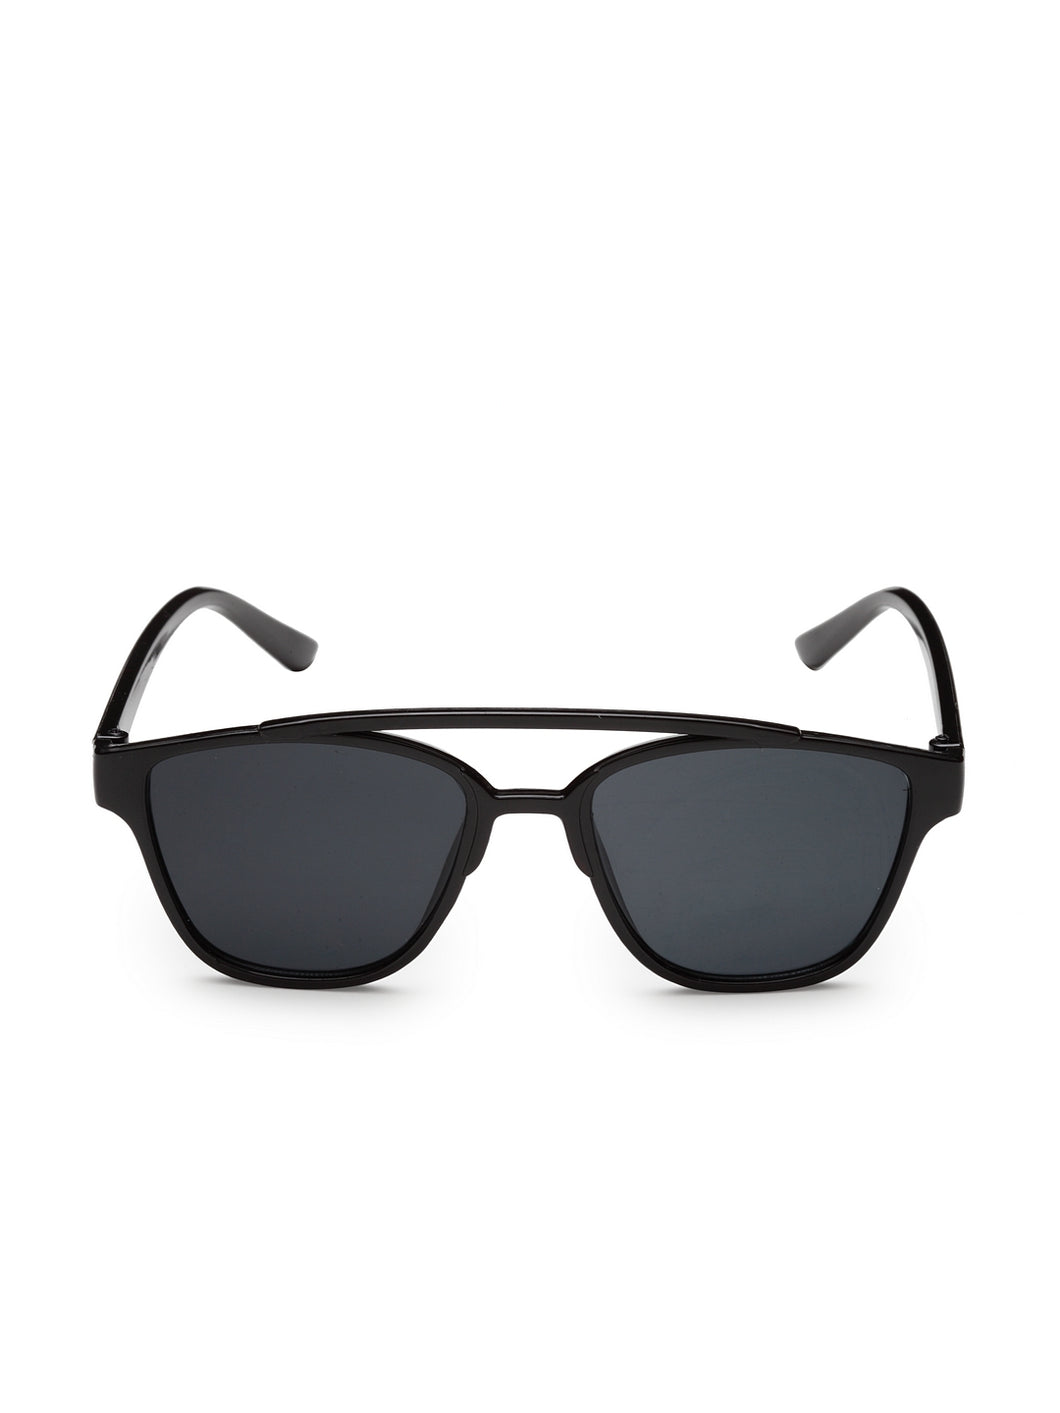 Stol'n Premium Attractive Fashionable UV-Protected Square Shape Sunglasses - Black